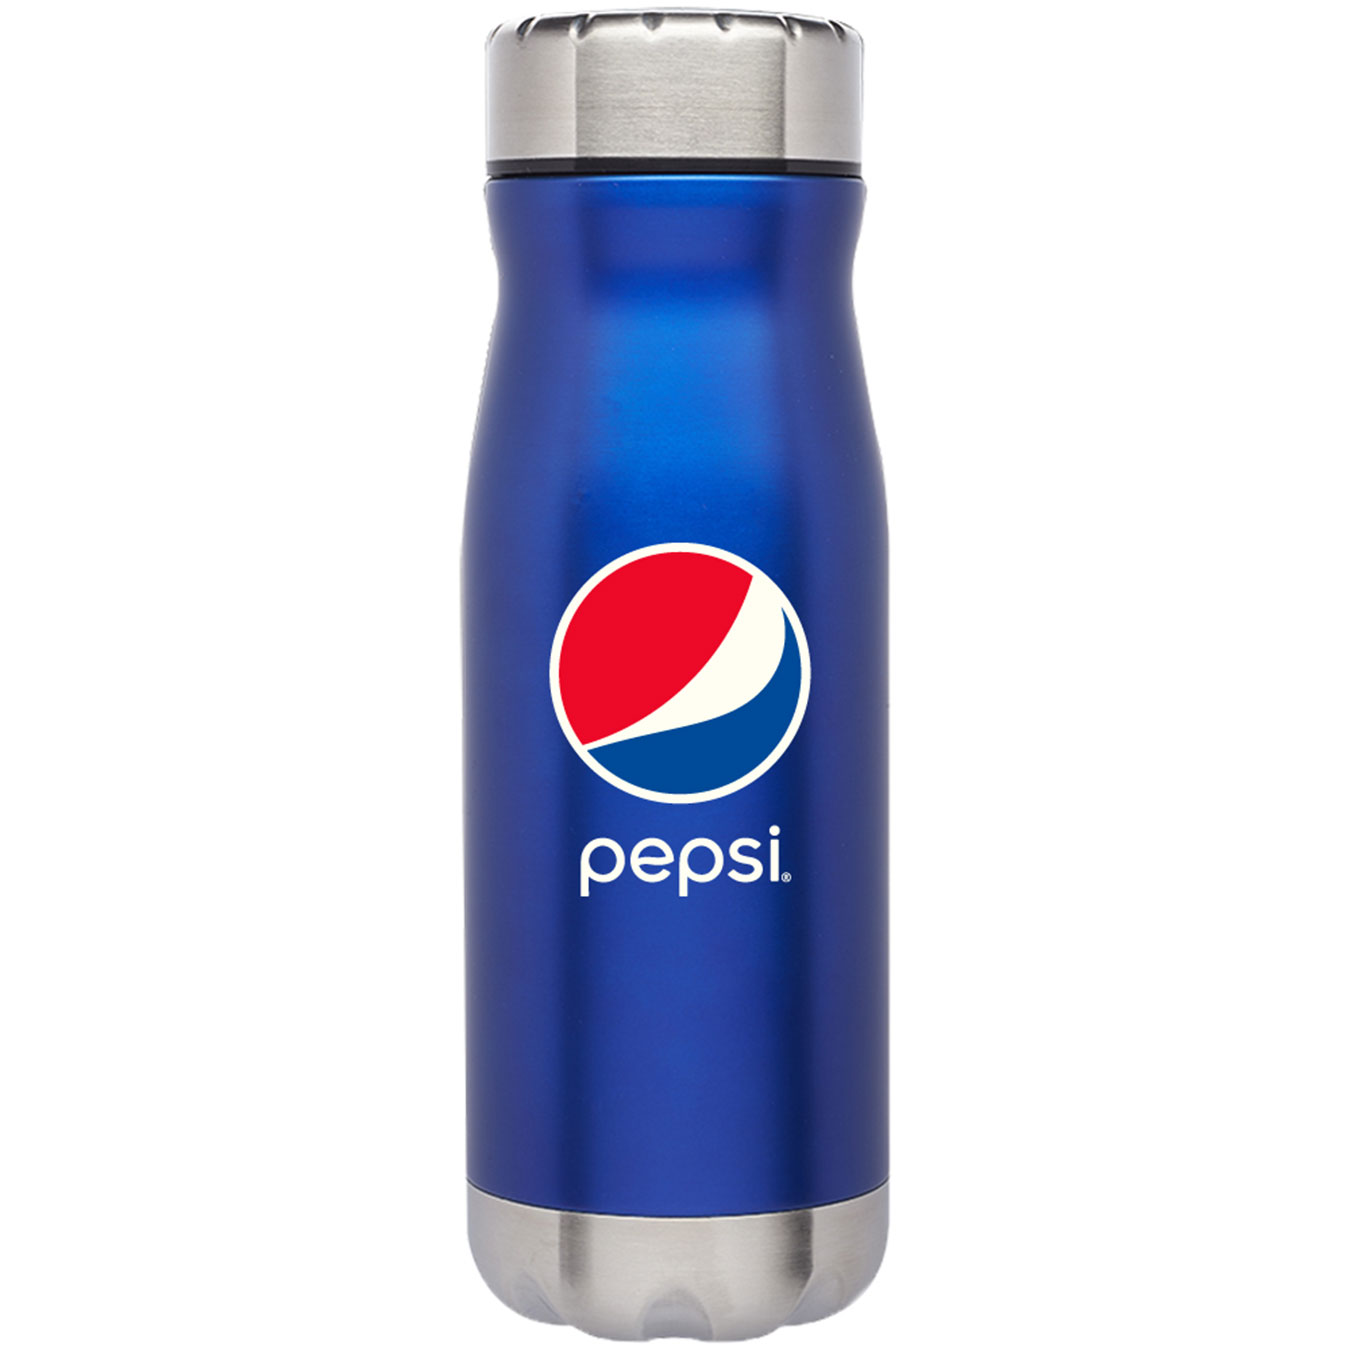 18 oz. Stratton Vacuum Insulated Water Bottle - Pepsi